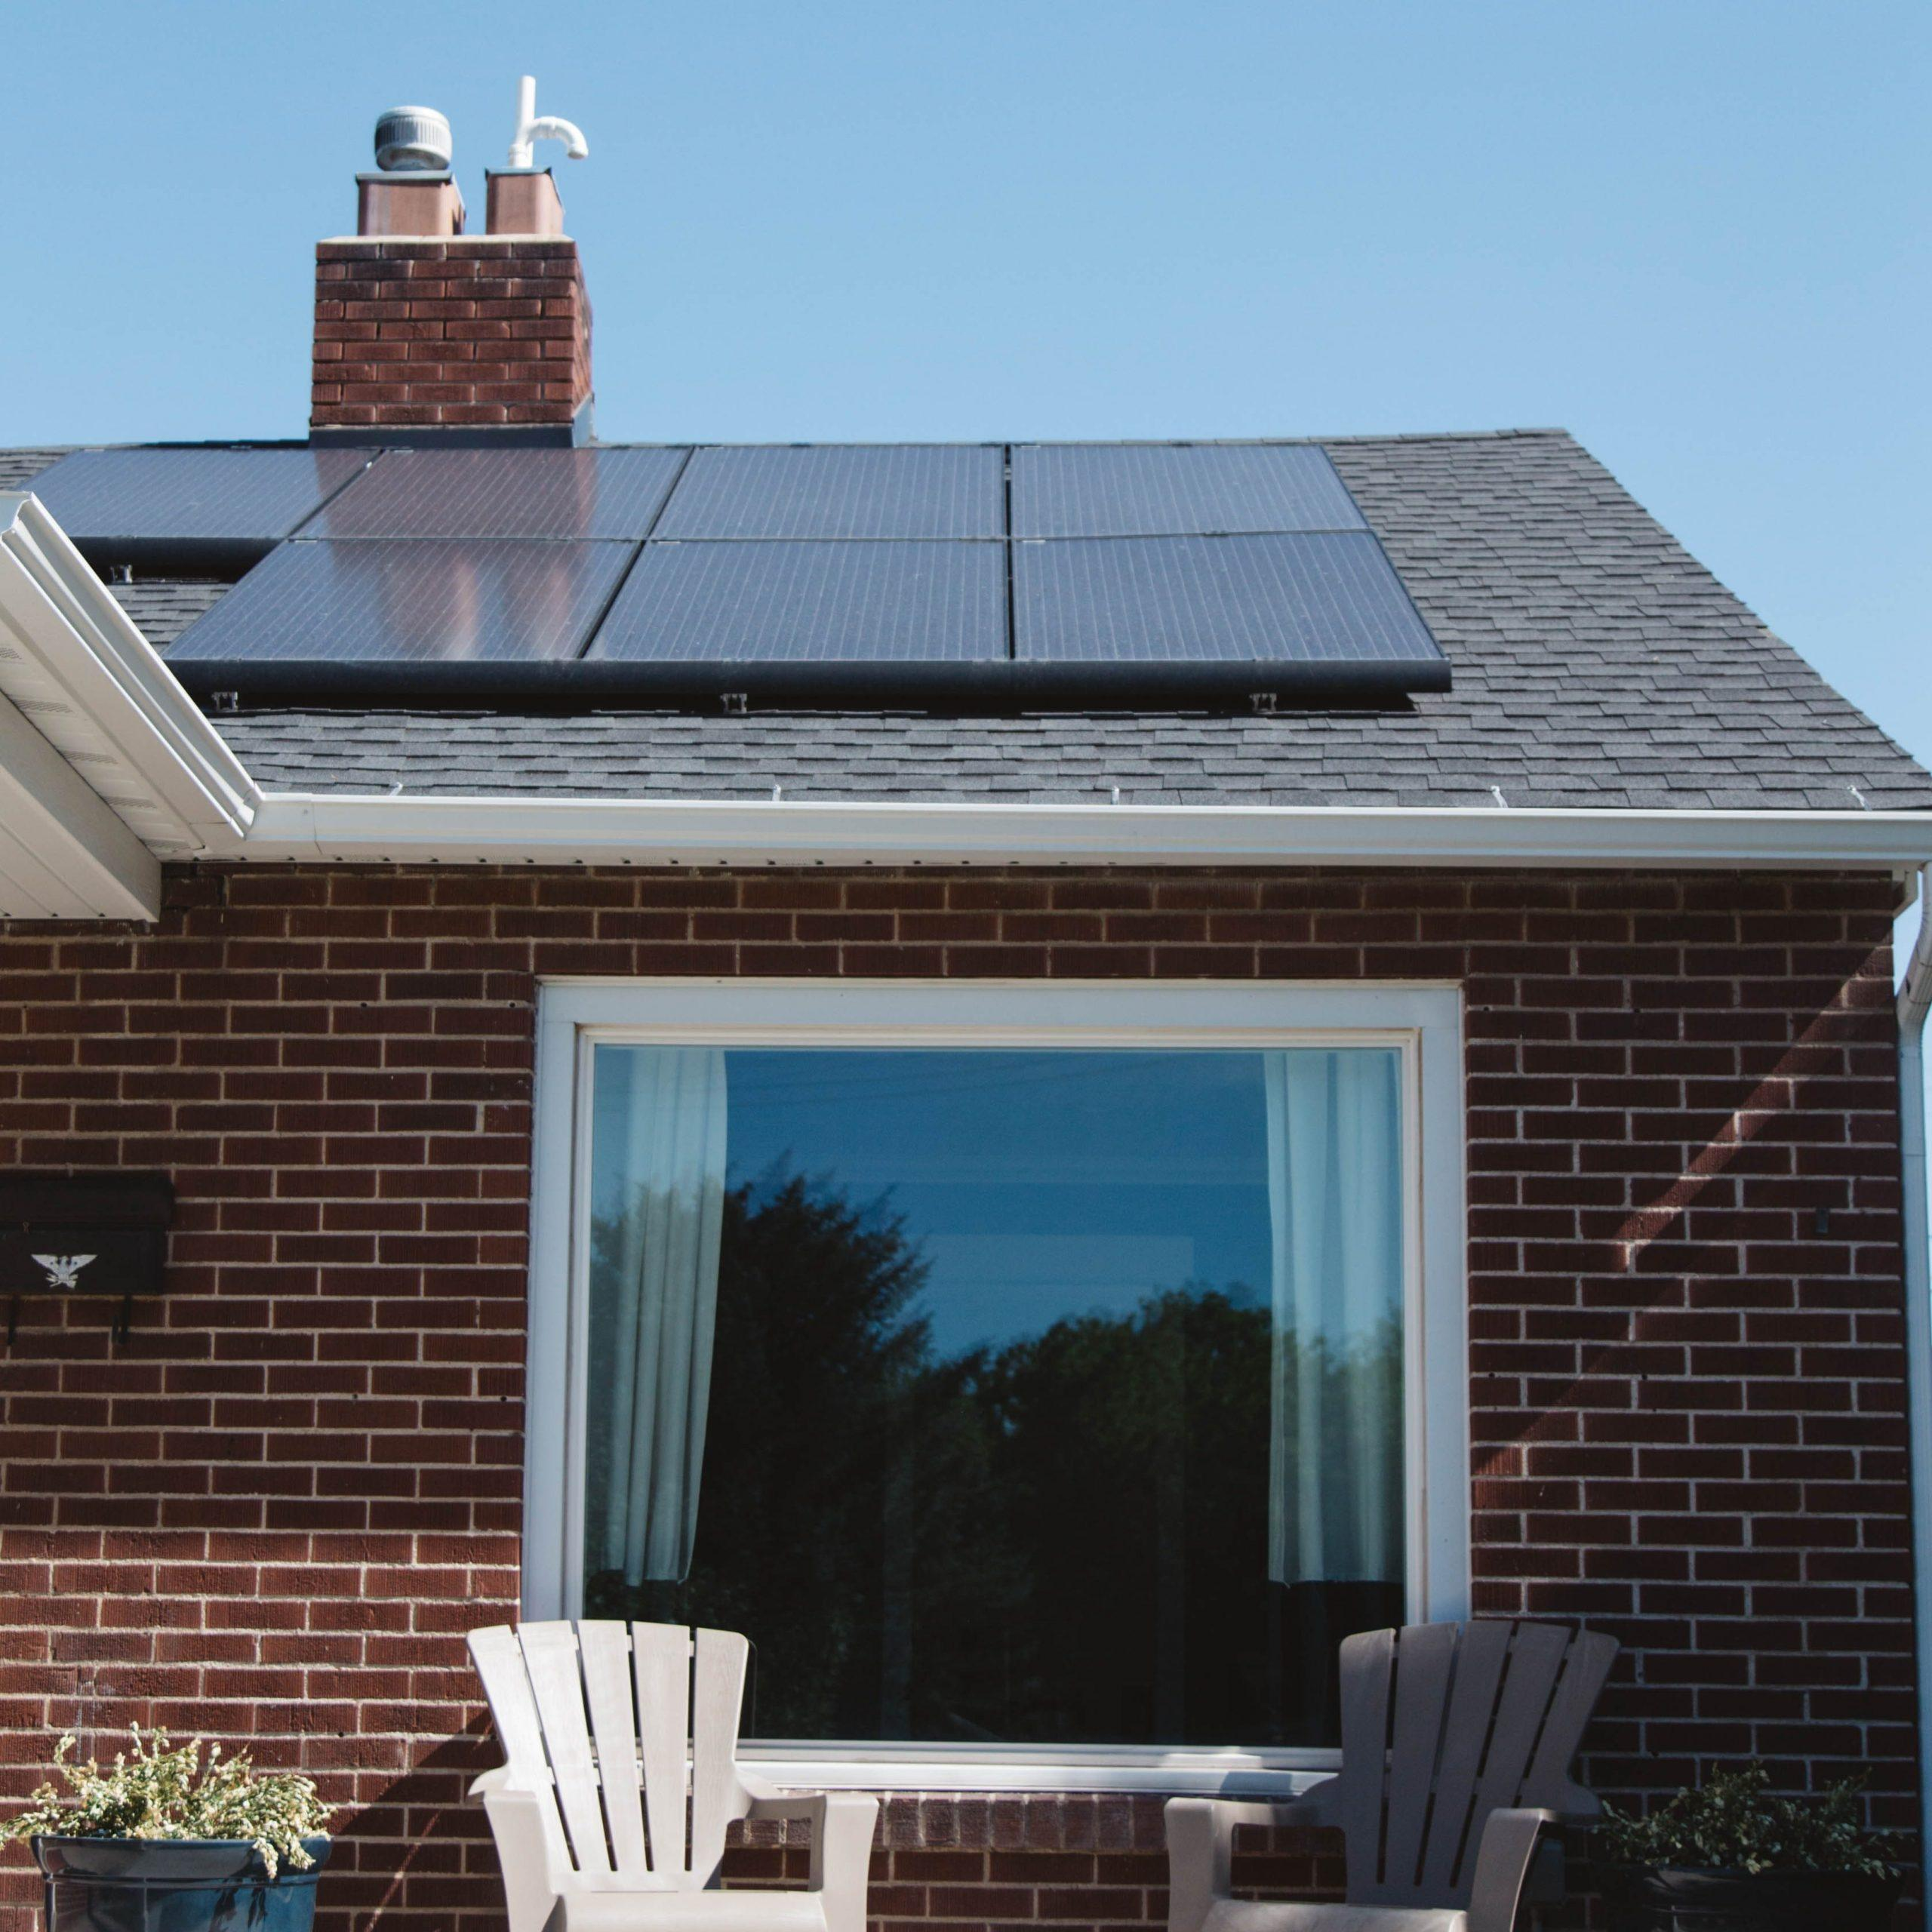 solar panels are good for sustainable housing